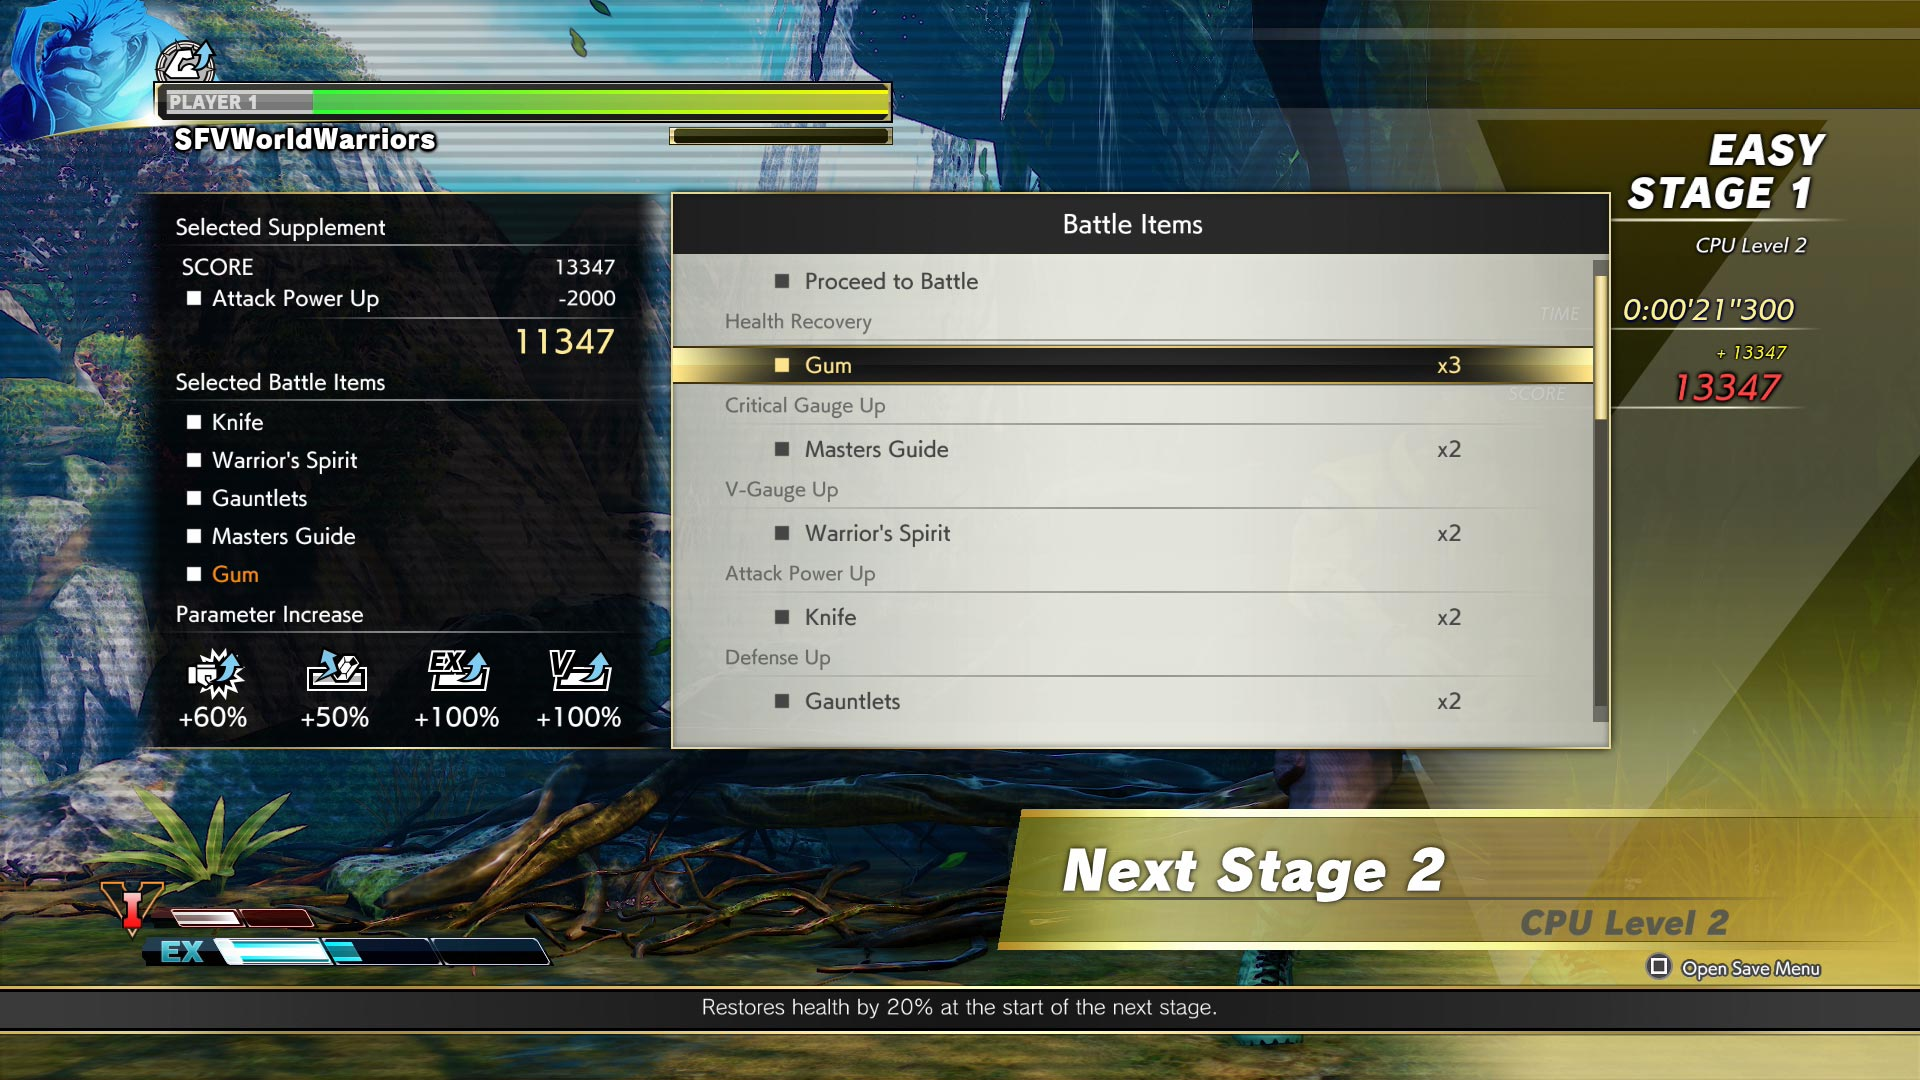 Devil May Cry, Air Man costumes, Survival mode changes in Street Fighter 5 8 out of 14 image gallery